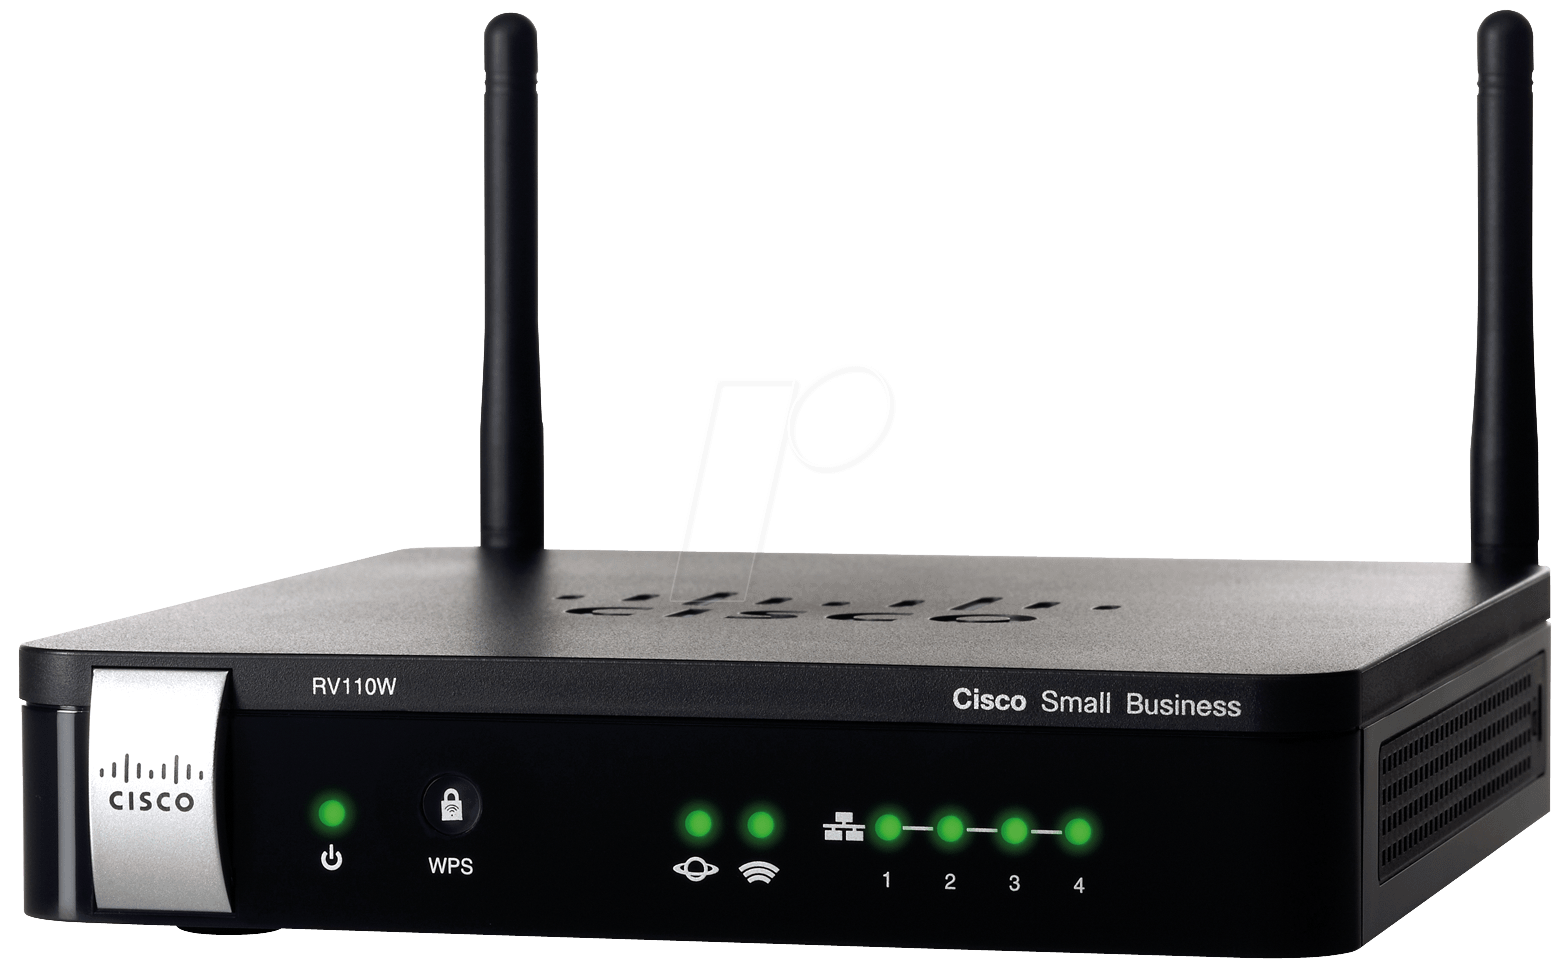 How to Improve the Range of Your Cisco Router? – Cisco Router Support